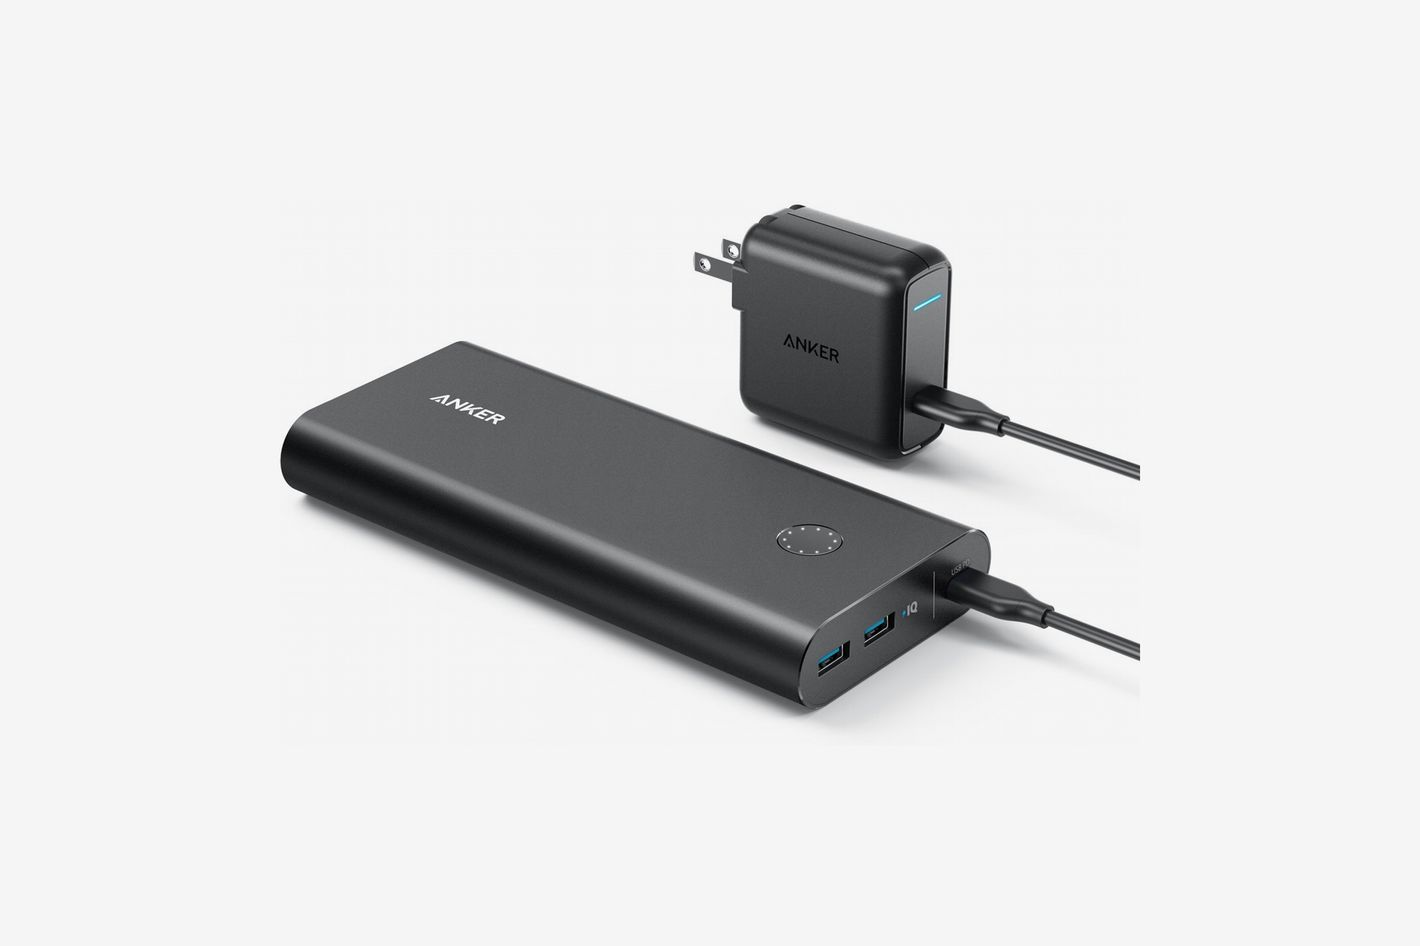 11 Best Portable Chargers and Power Banks 2019